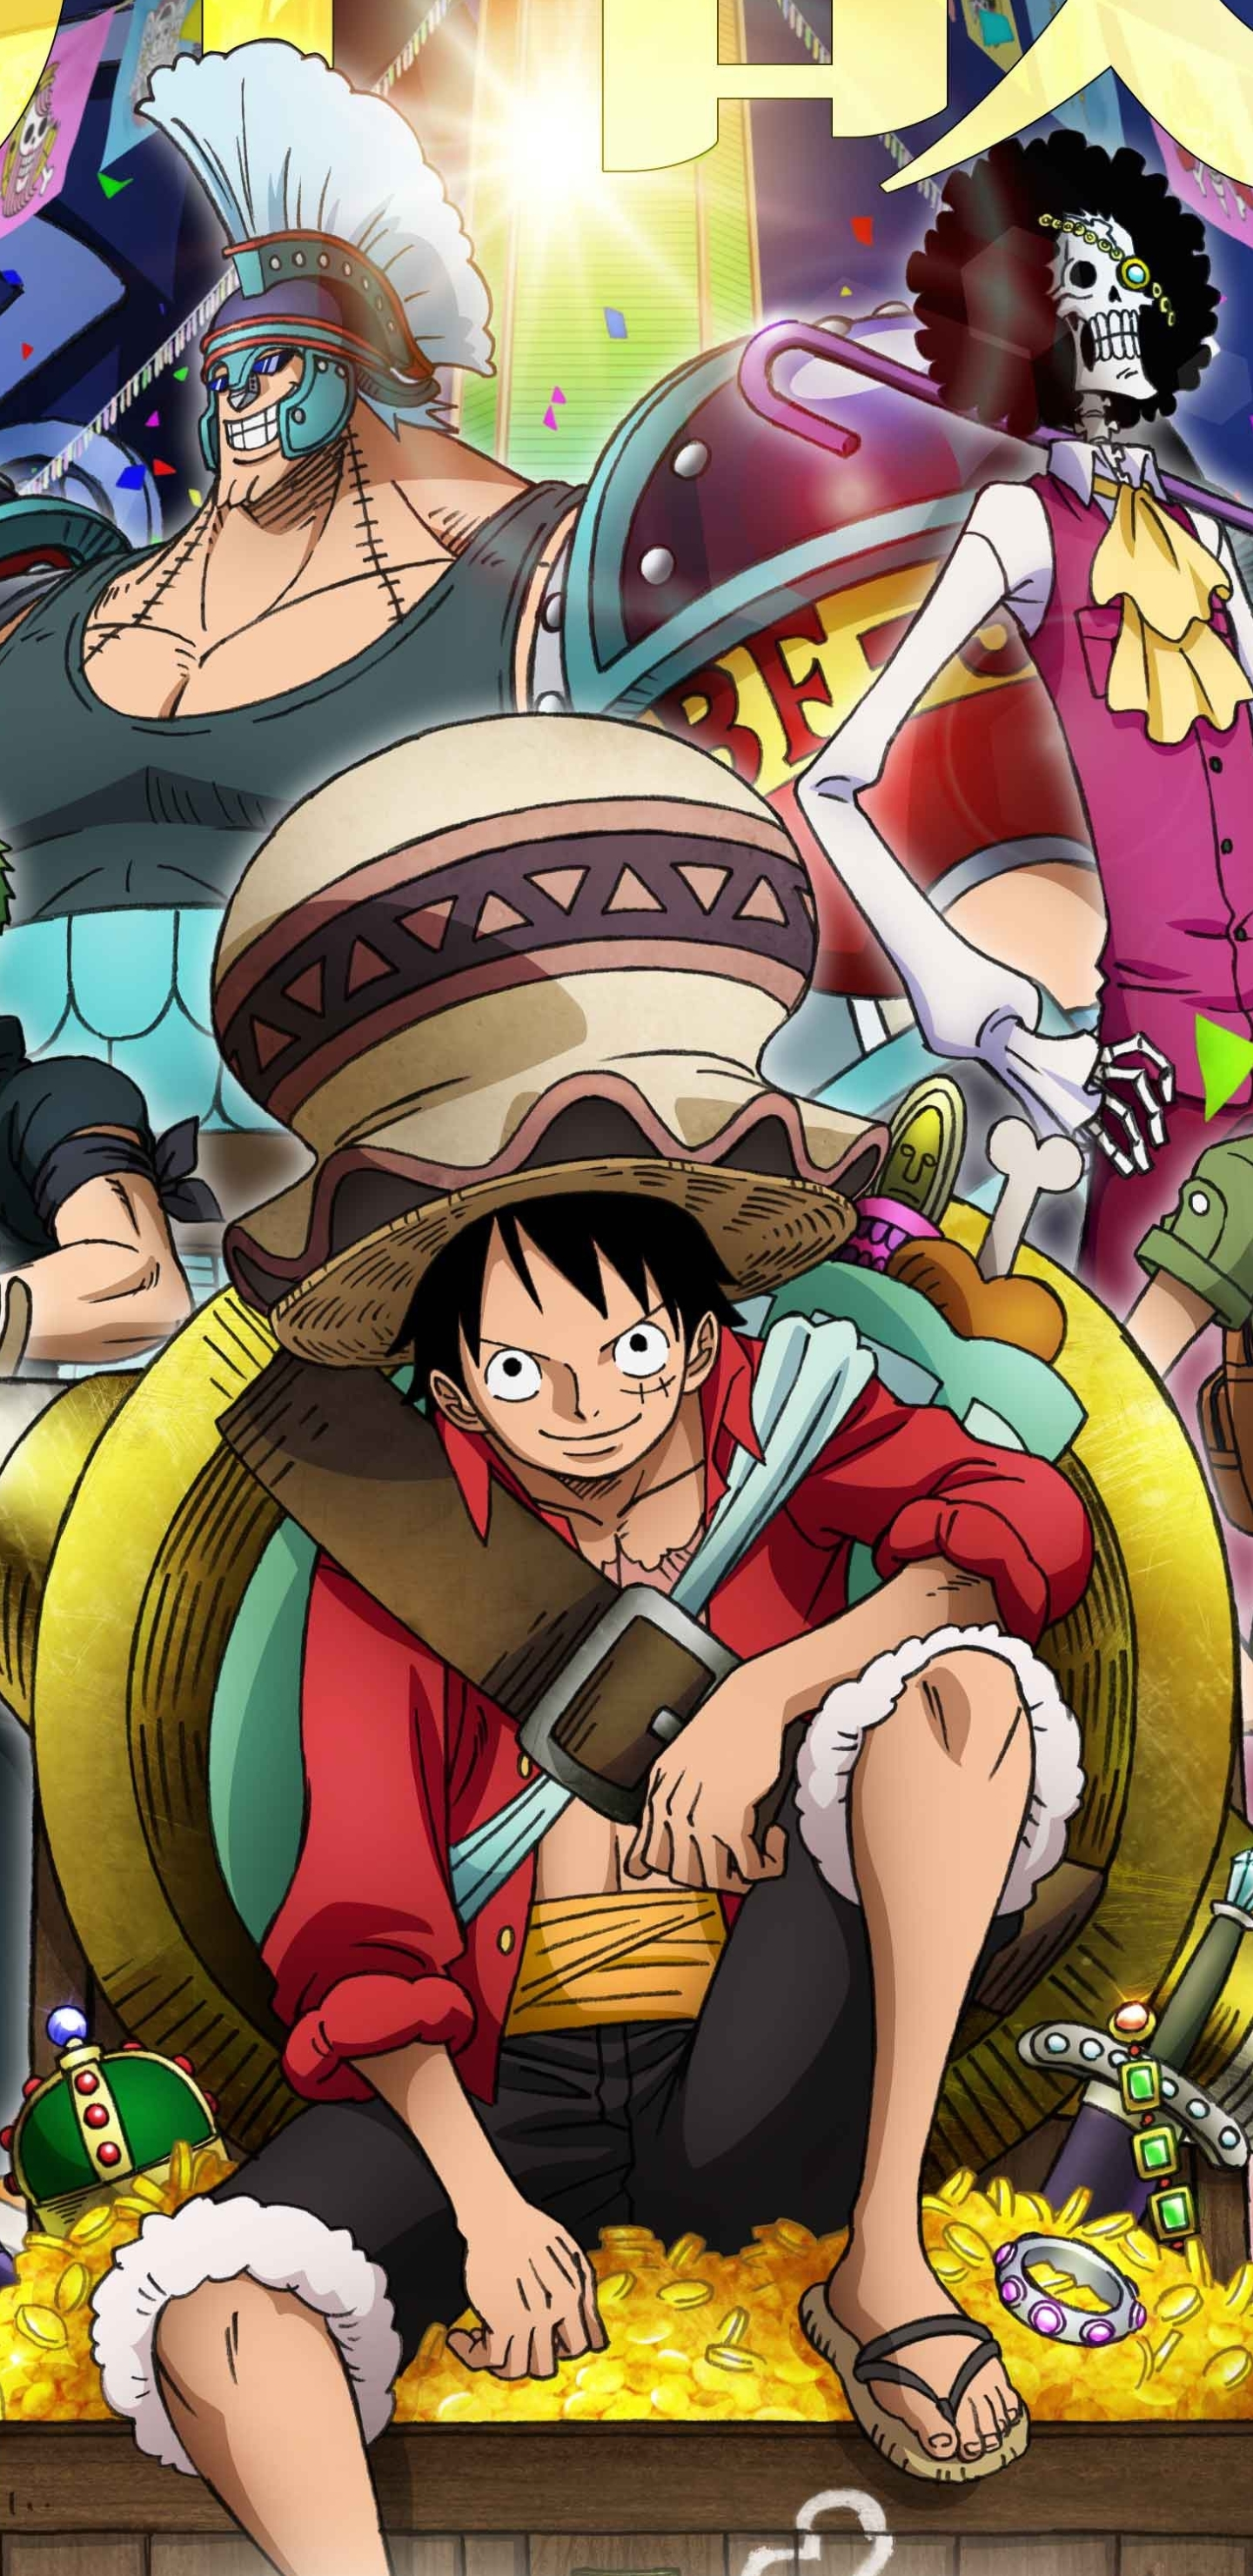 Anime One Piece Stampede 1440x2960 Wallpaper Id 831371 Mobile Abyss